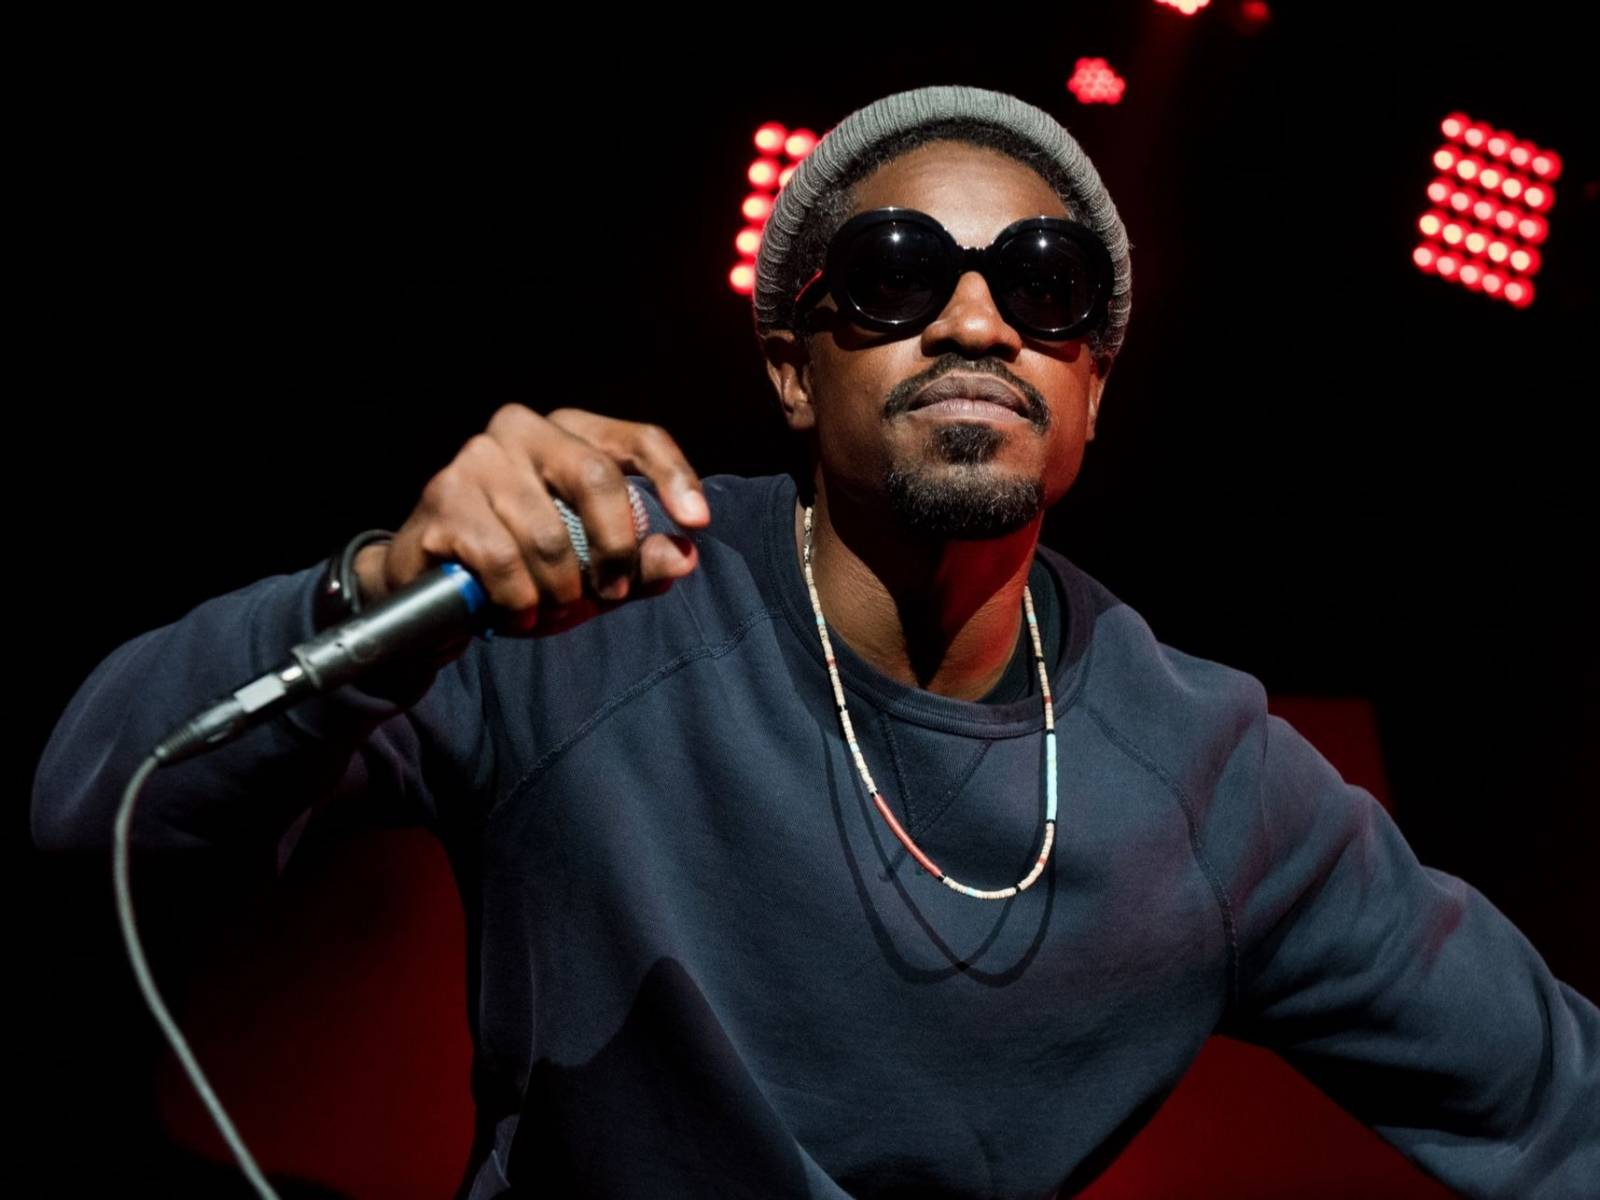 André 3000 Captured Wandering Around Airport Playing A Flute